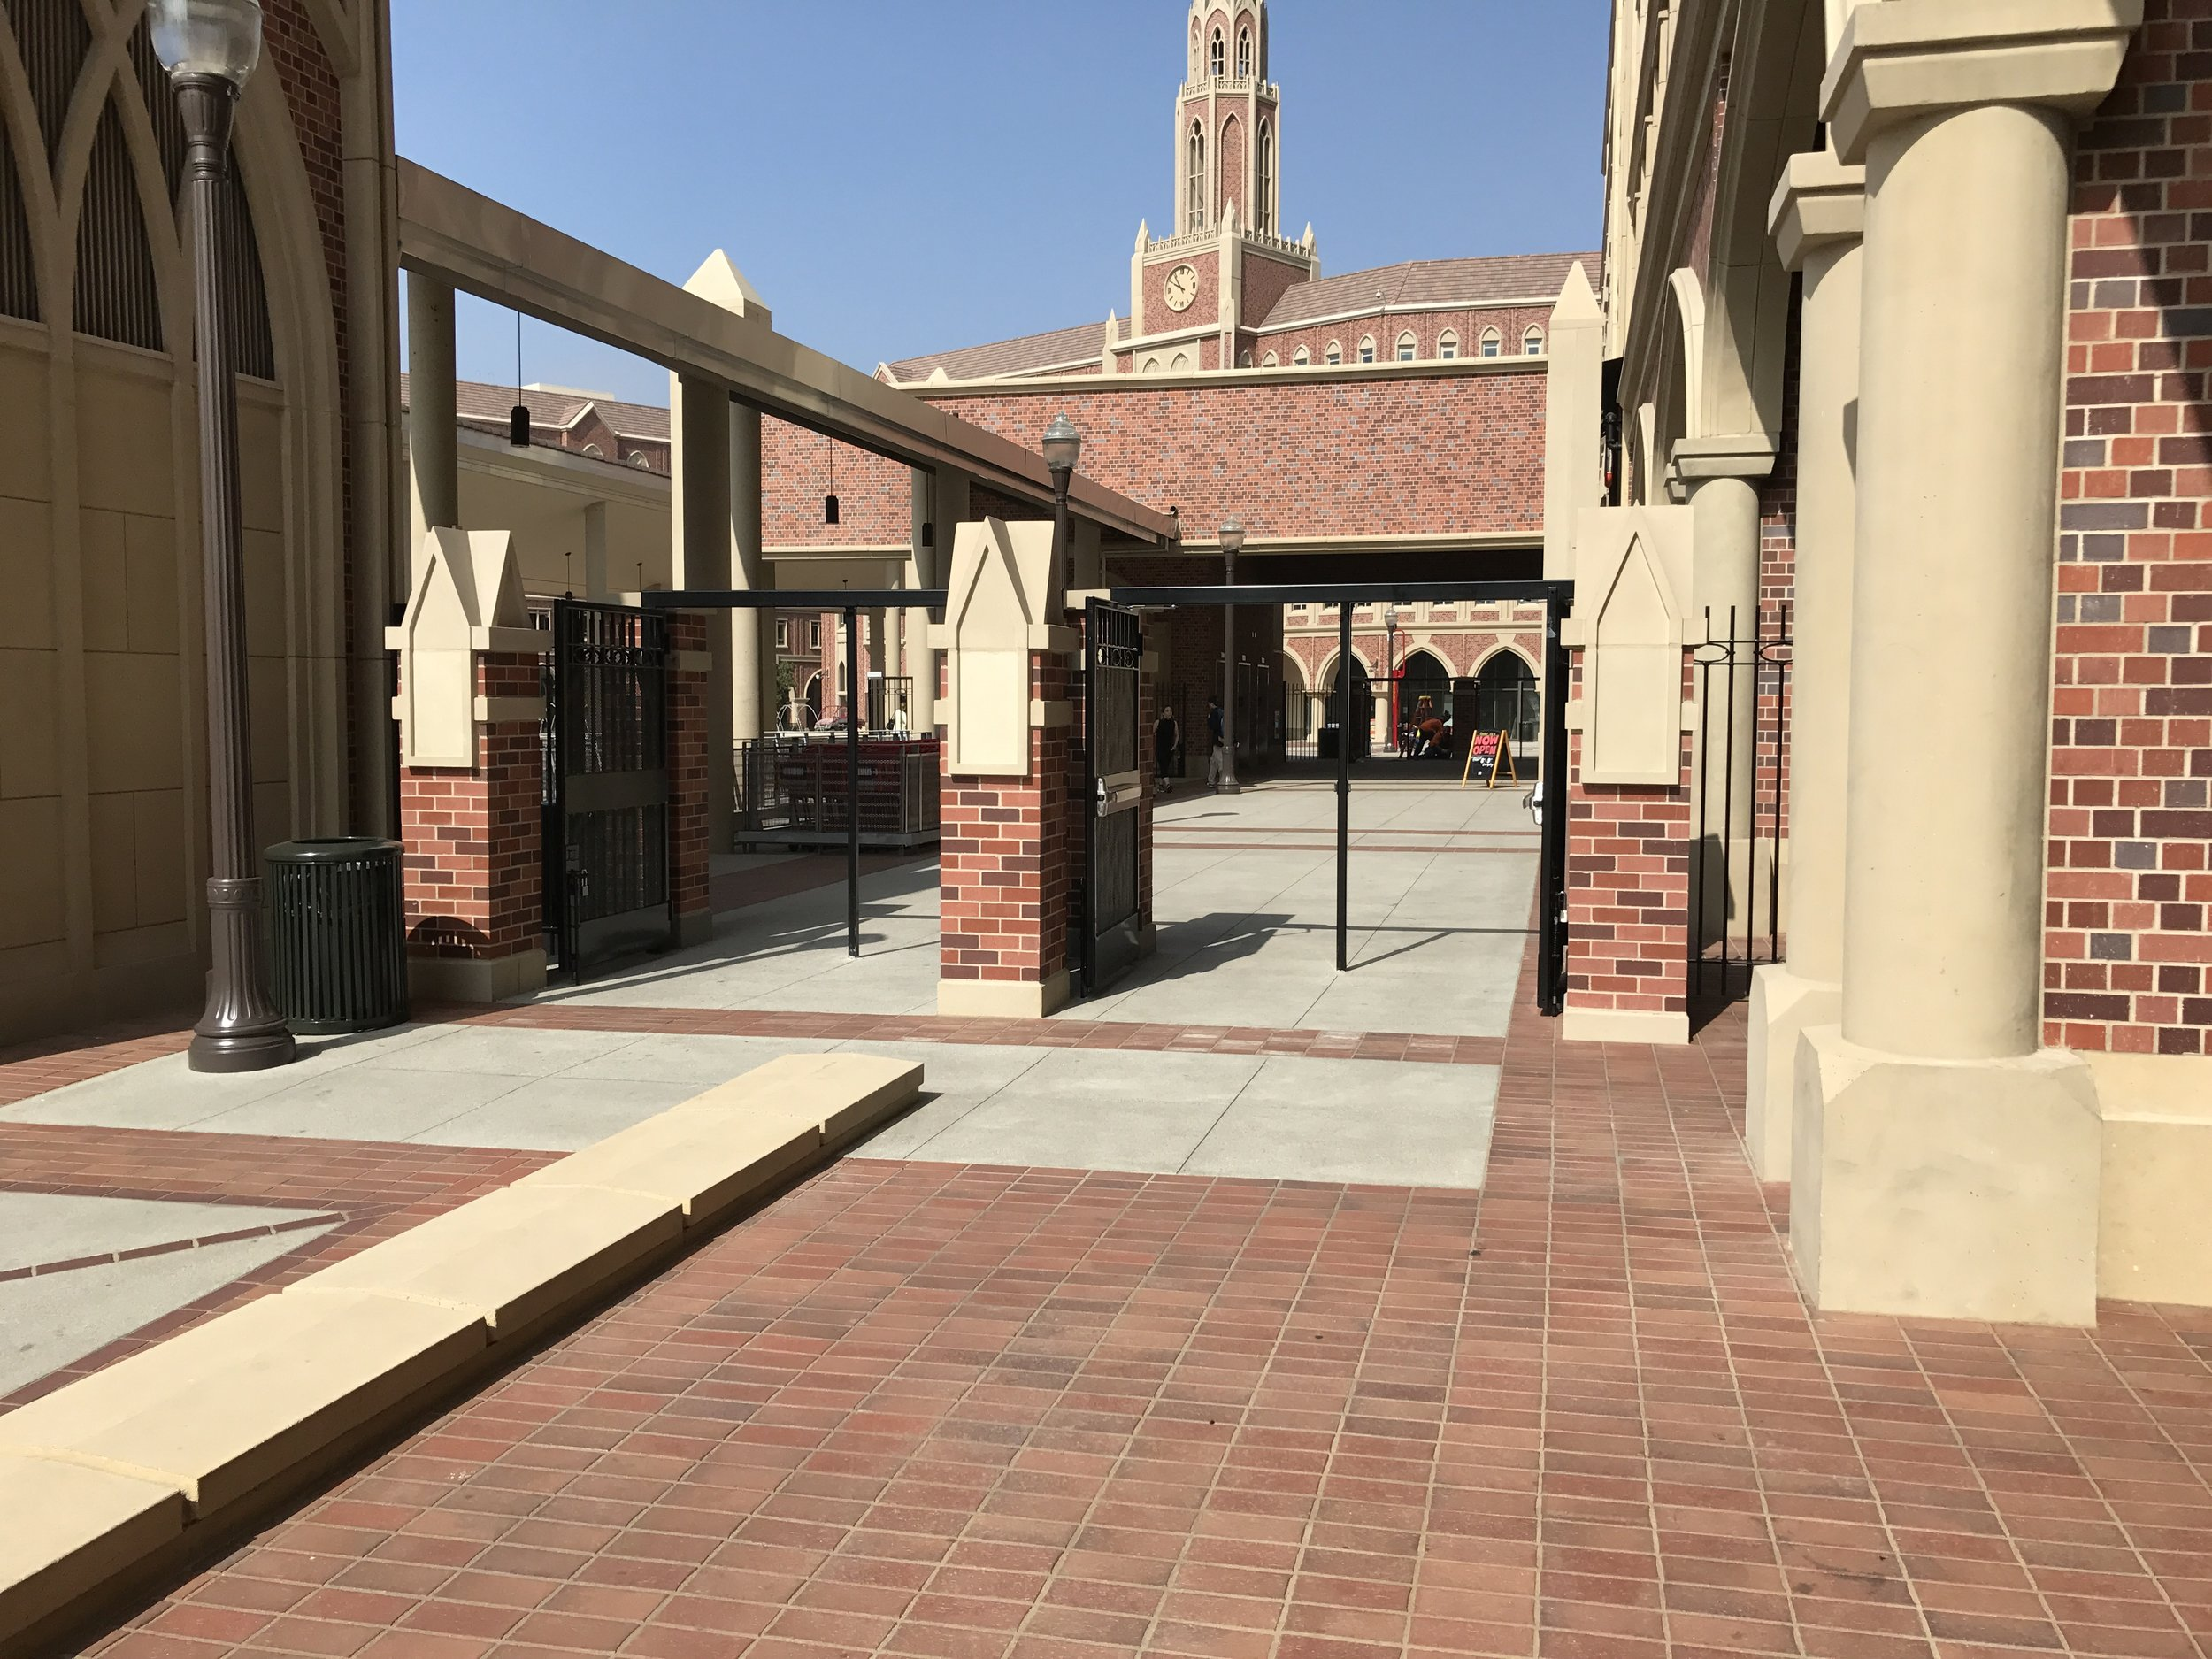 These columns for the security gates received more design attention than some of the facades